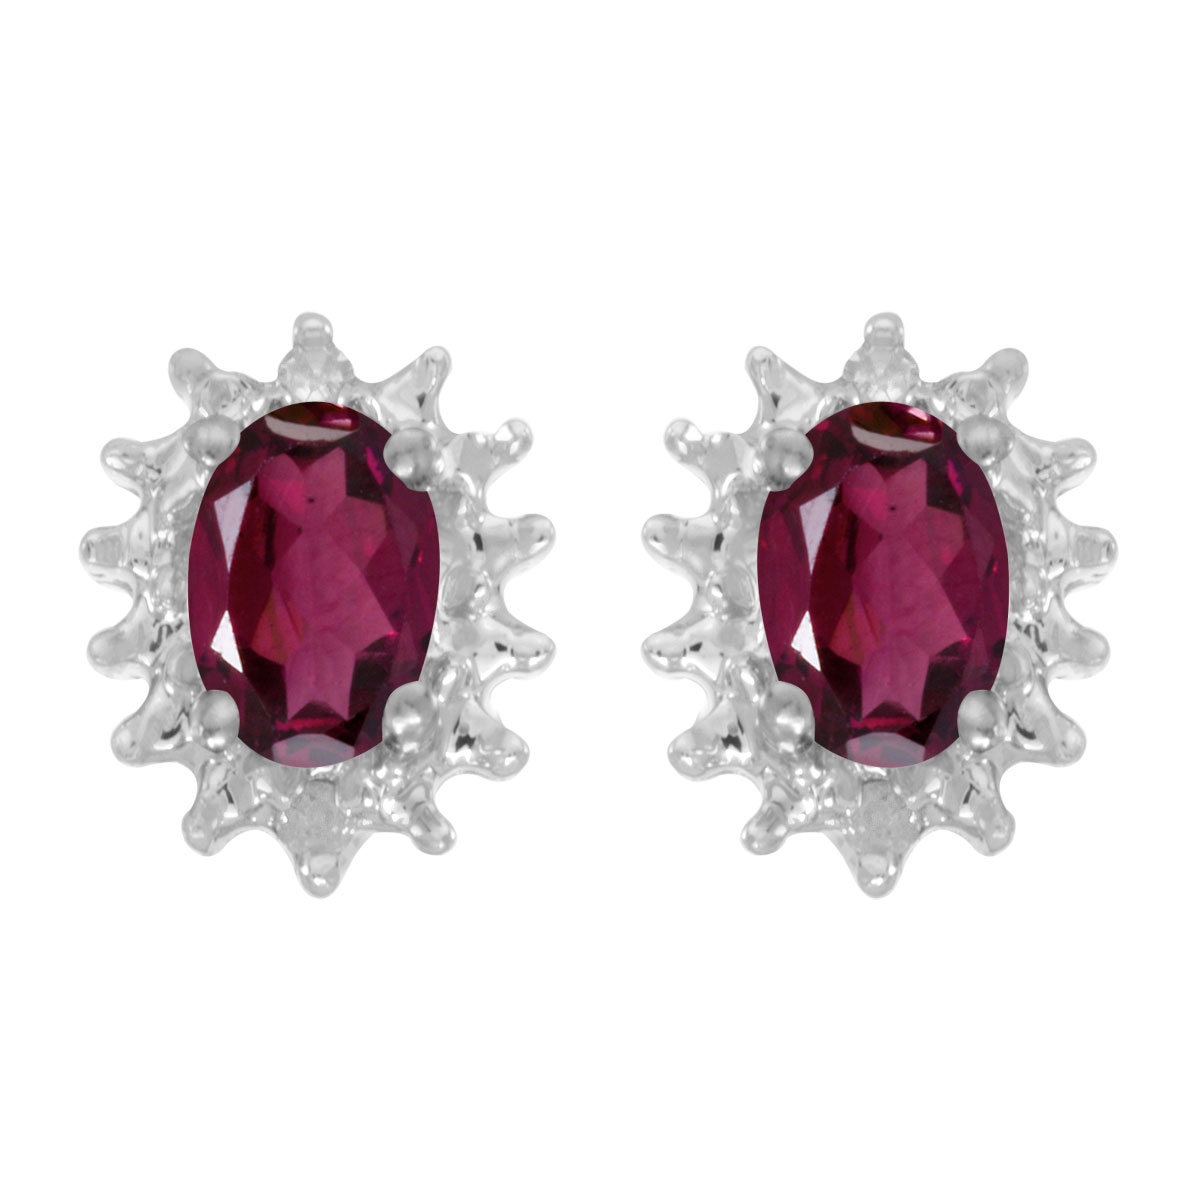 These 14k white gold oval rhodolite garnet and diamond earrings feature 6x4 mm genuine natural rhodolite garnets with a 0.98 ct total weight and .04 ct diamonds.